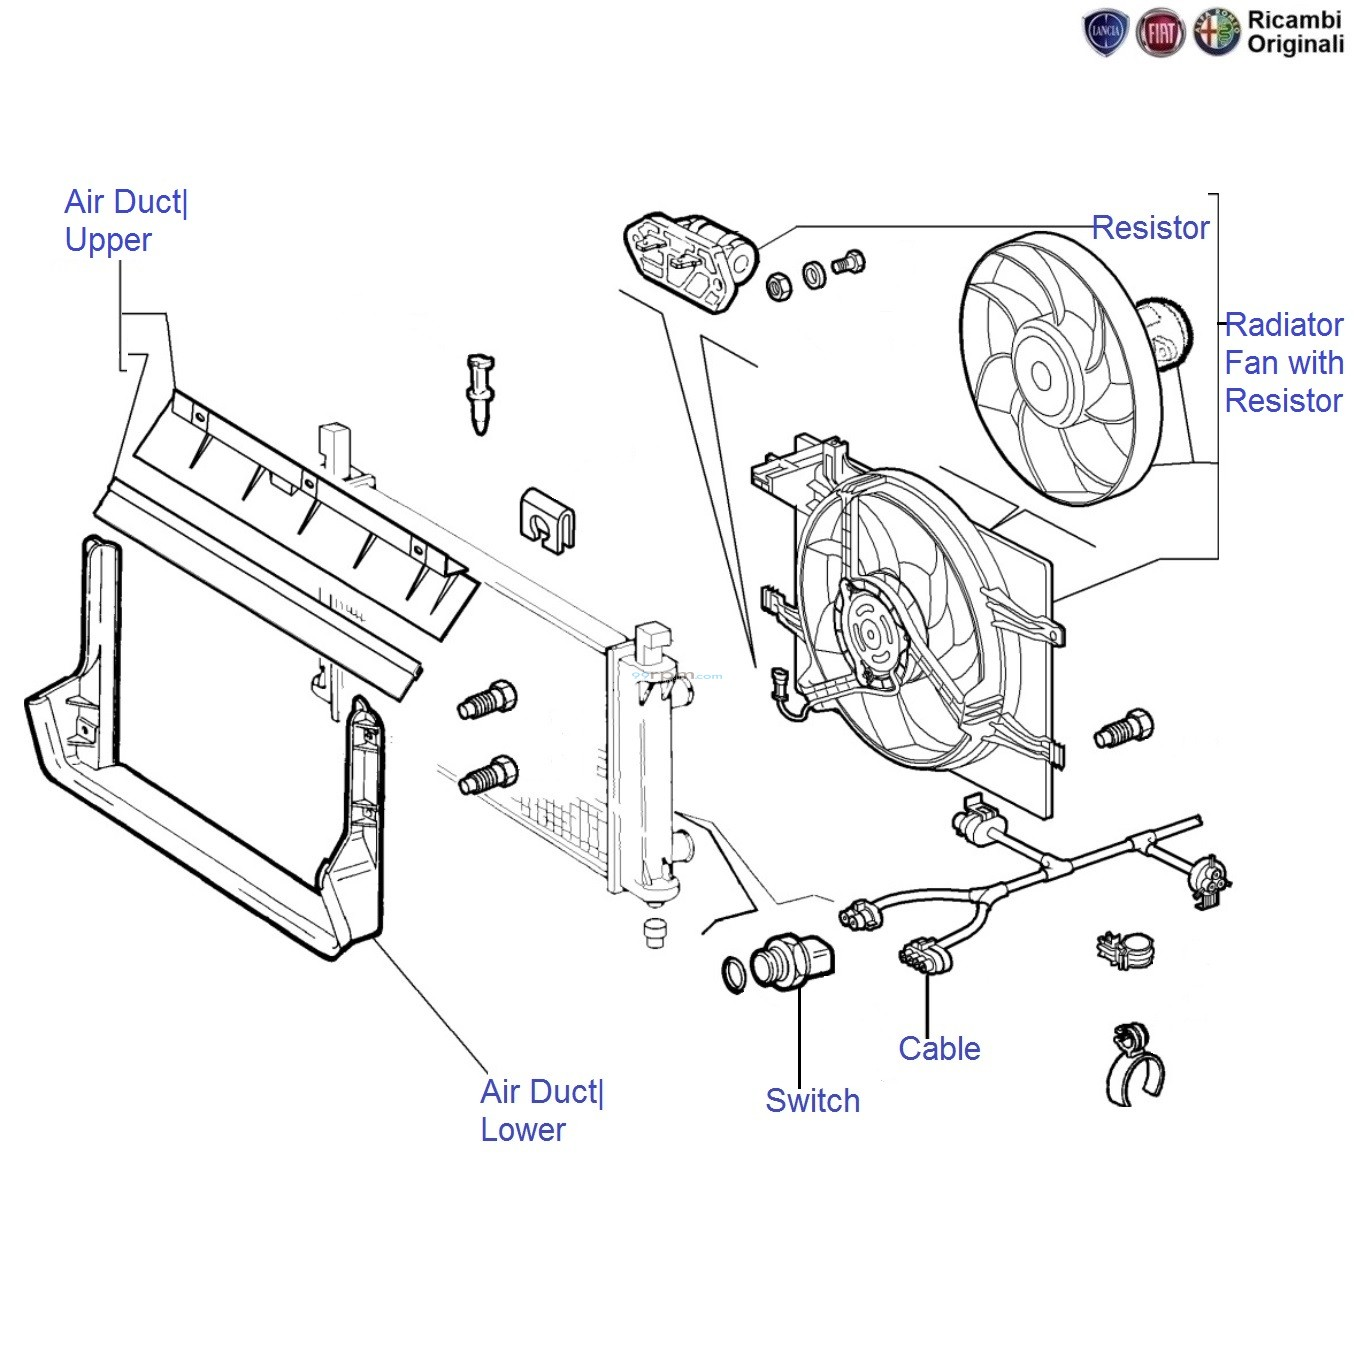 2006 Kia Sedona Stereo Wiring on seicento fiat engine diagram